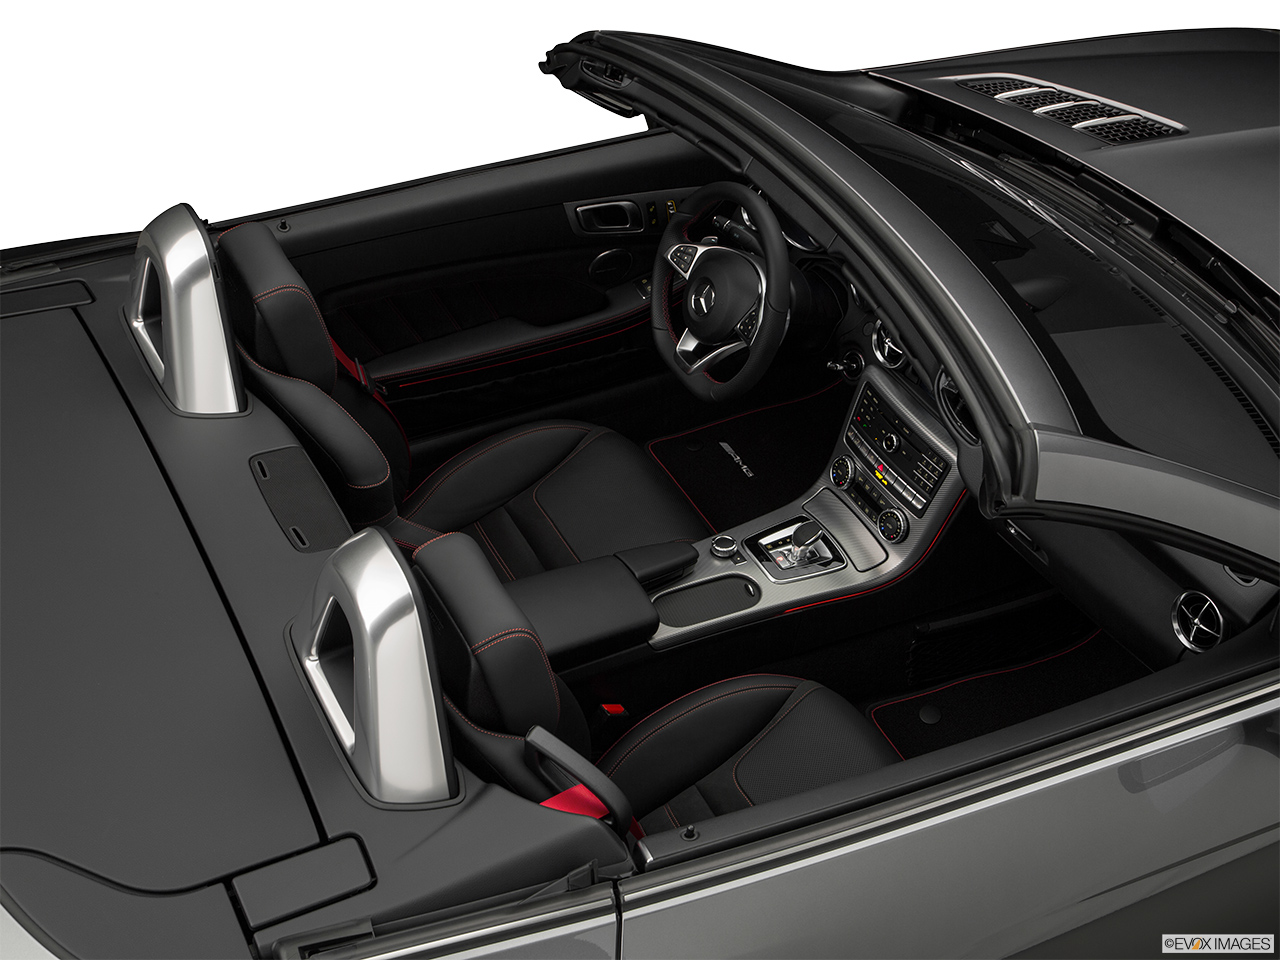 2019 Mercedes-Benz SLC-class SLC43 AMG Convertible Hero (high from passenger, looking down into interior).